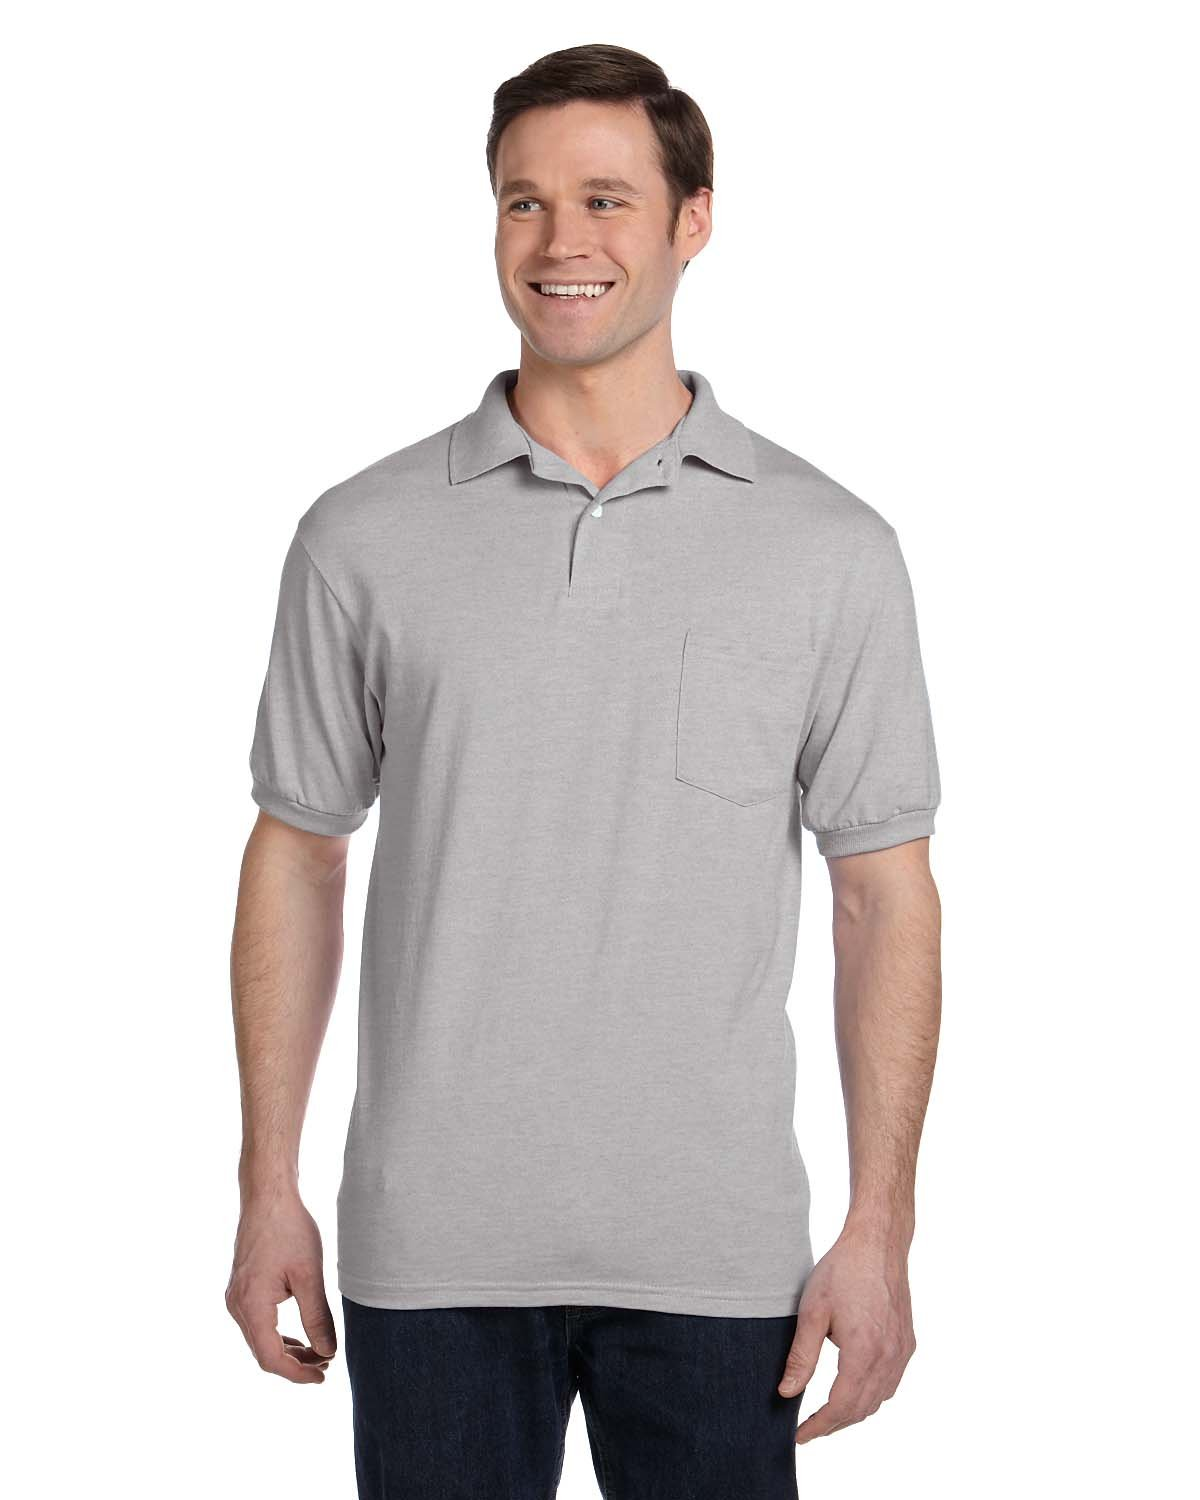 Hanes Men's 2 Pack Short Sleeve Jersey Pocket Polo, Light Steel, Small by Hanes